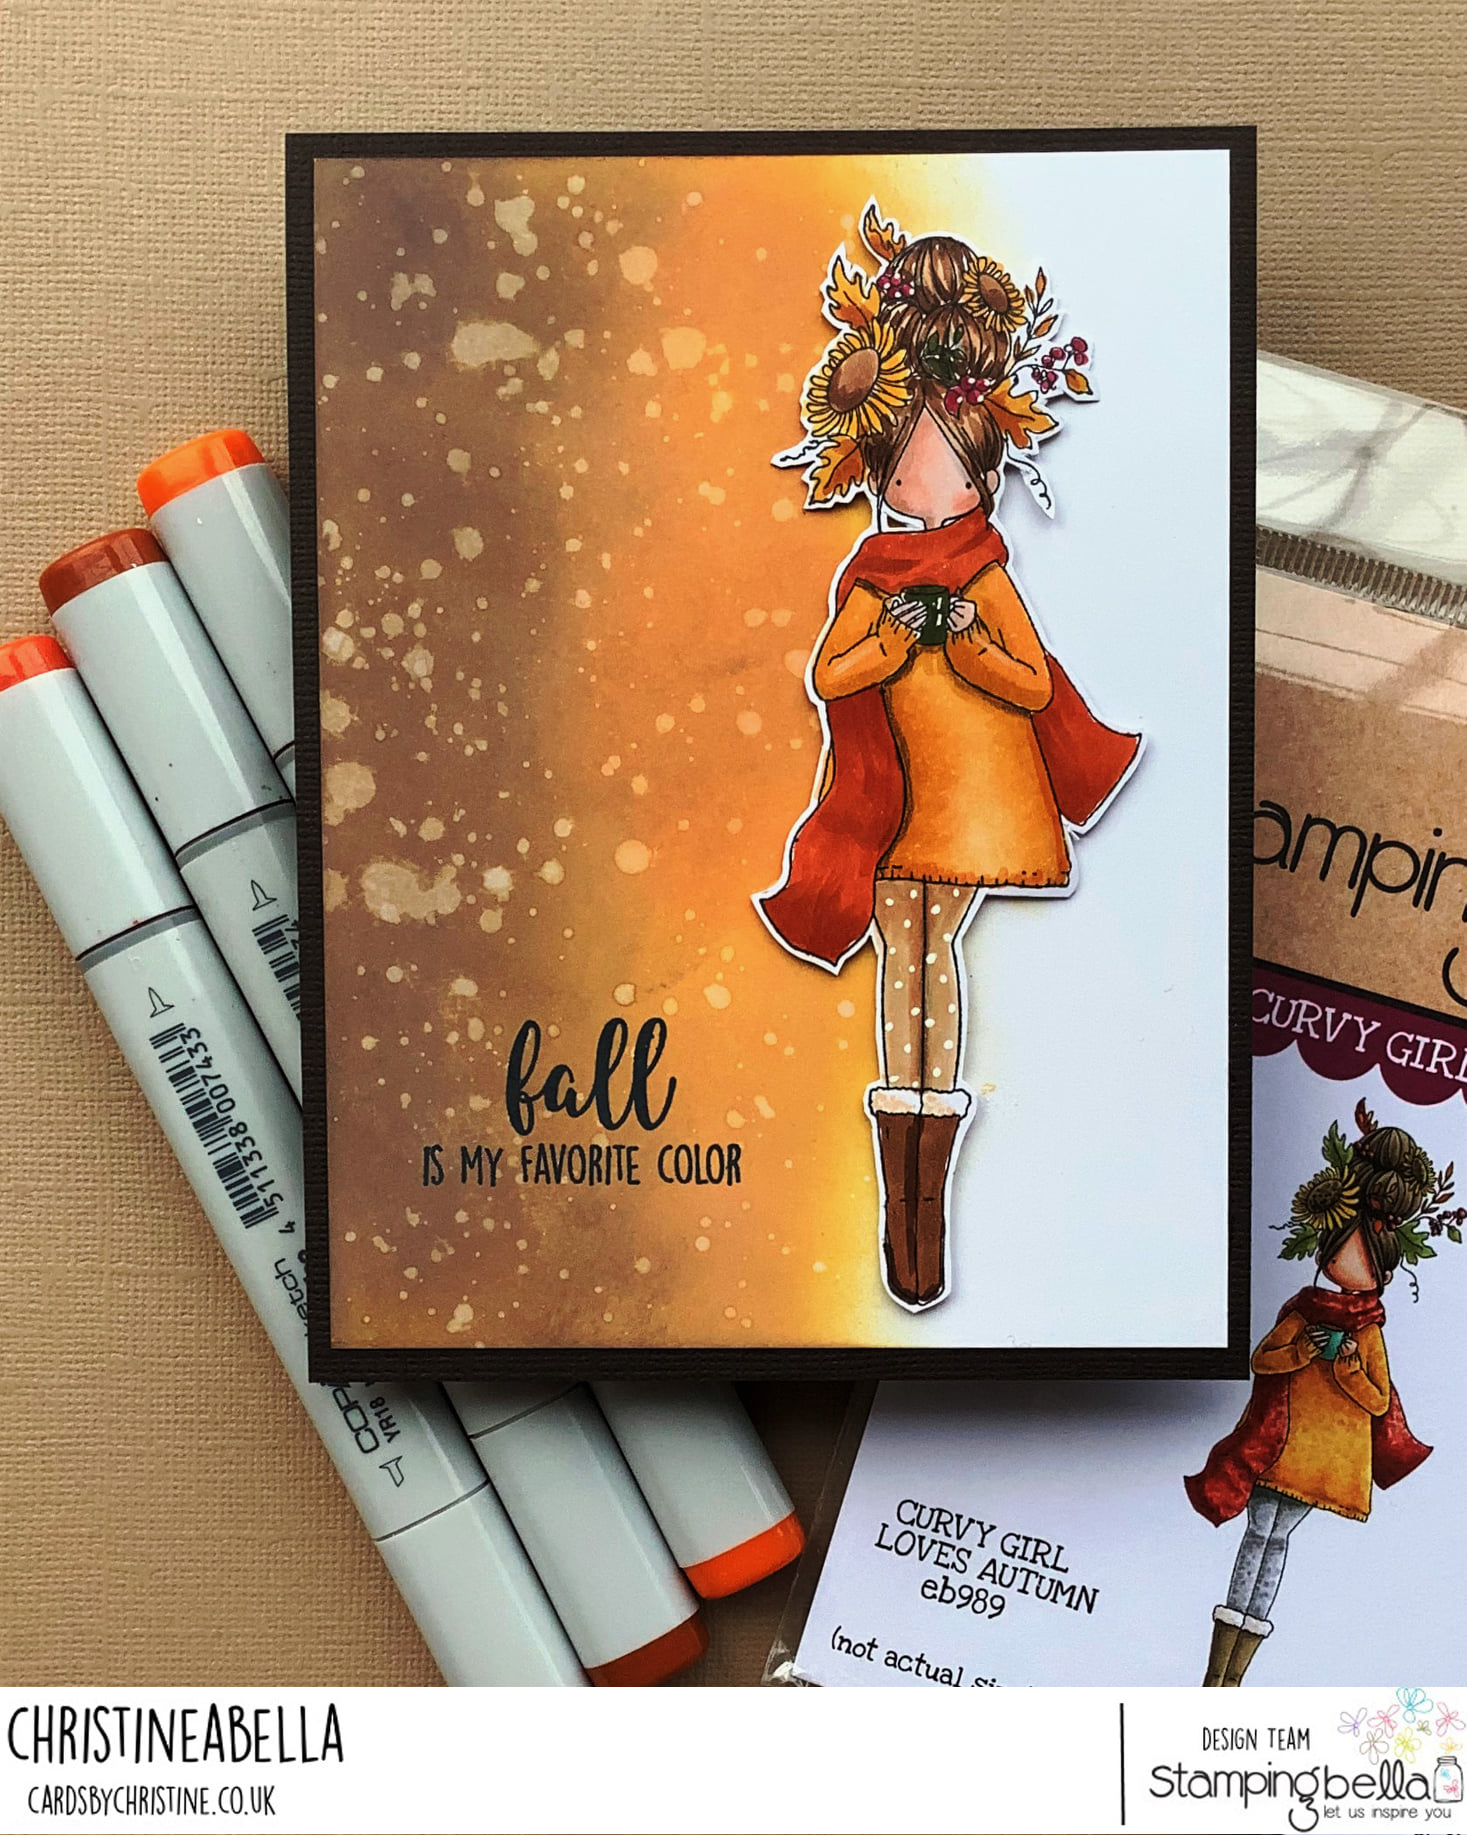 www.stampingbella.com: rubber stamp used: CURVY GIRL LOVES AUTUMN. Card by Christine LEVISON